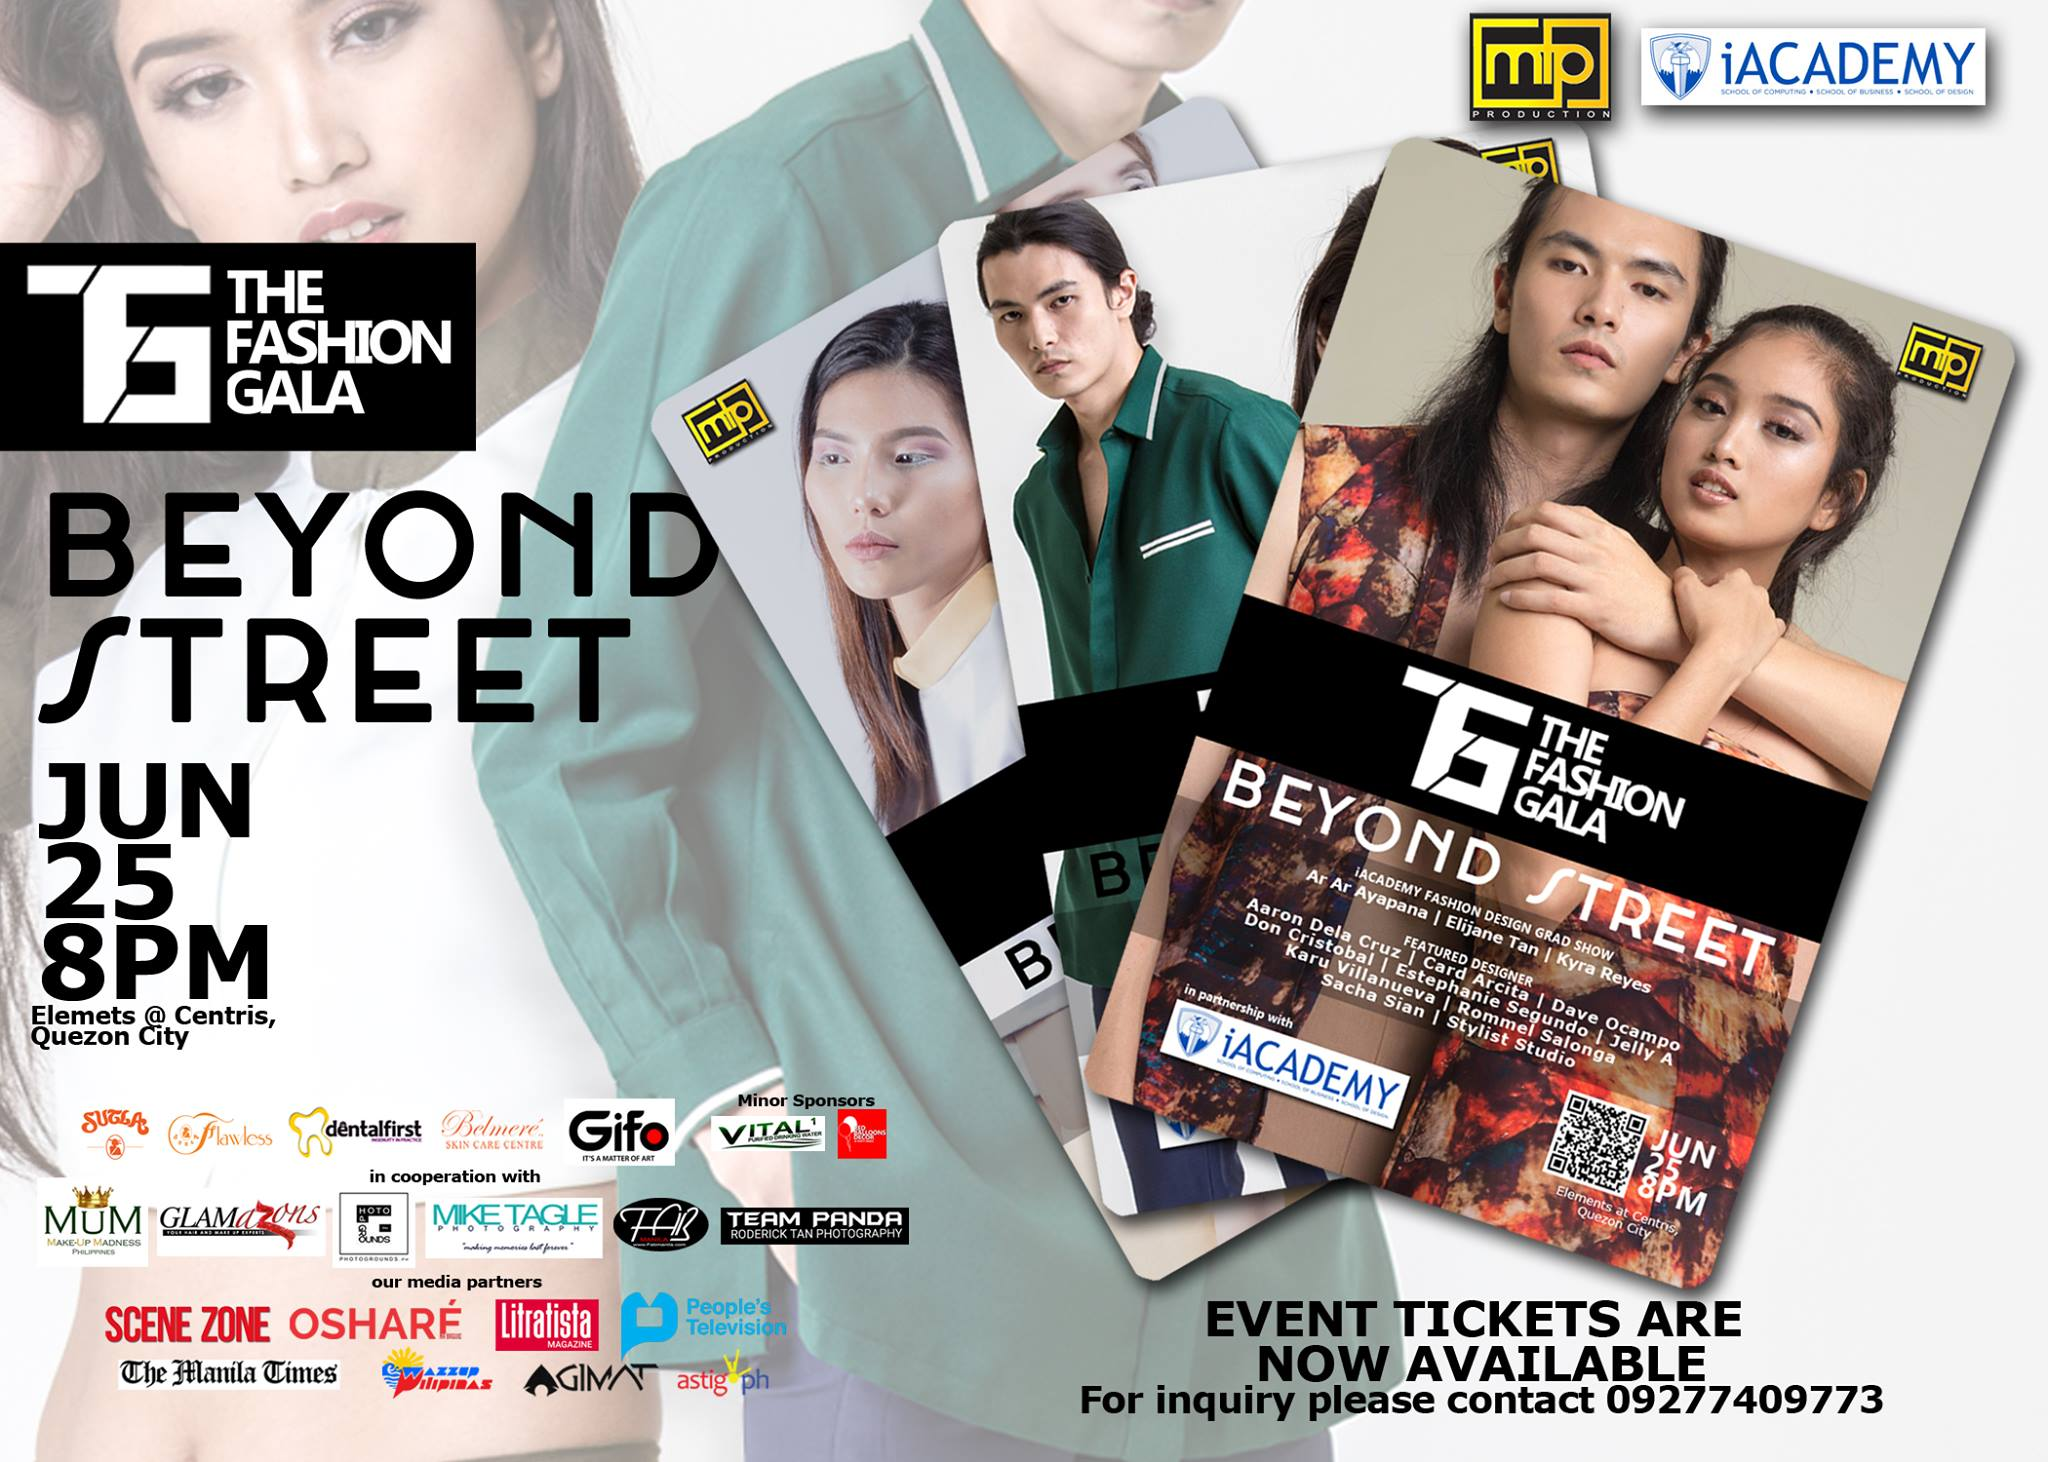 MTP Production Page Liked · June 12 · THE FASHION GALA BEYOND STREET TICKETS ARE NOW AVAILABLE! For more information please contact 09277409773 Get a chance to witness the latest fashion trend in the metro with our 13 local and international fashion designers on june 25, 2017 - 8PM at Elements@Centris. See you!